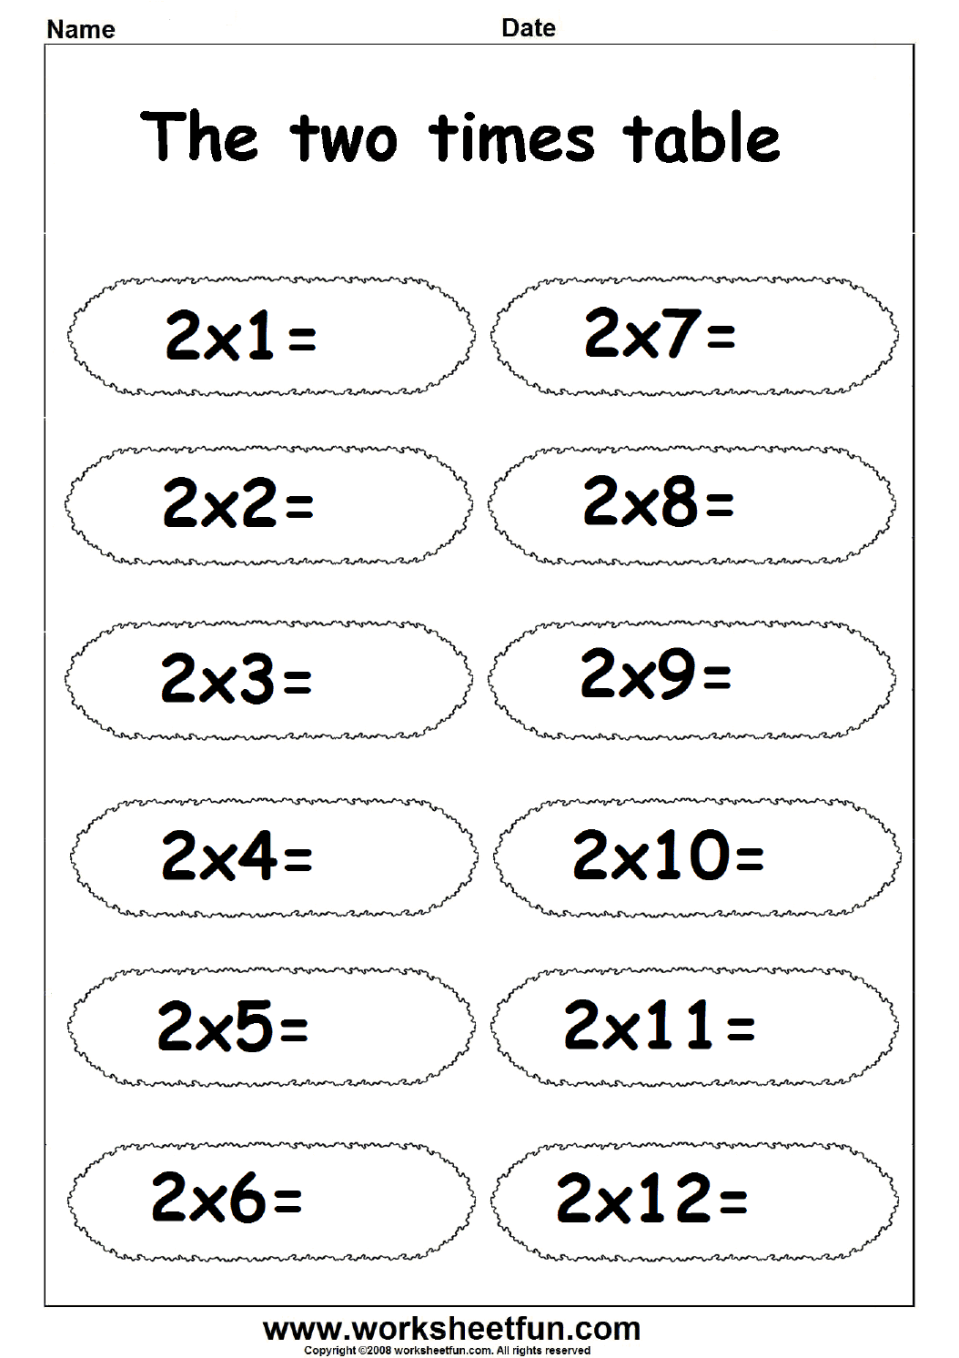 Image Result For Math Worksheets For Grade 1 Addition And Subtraction Word Problems